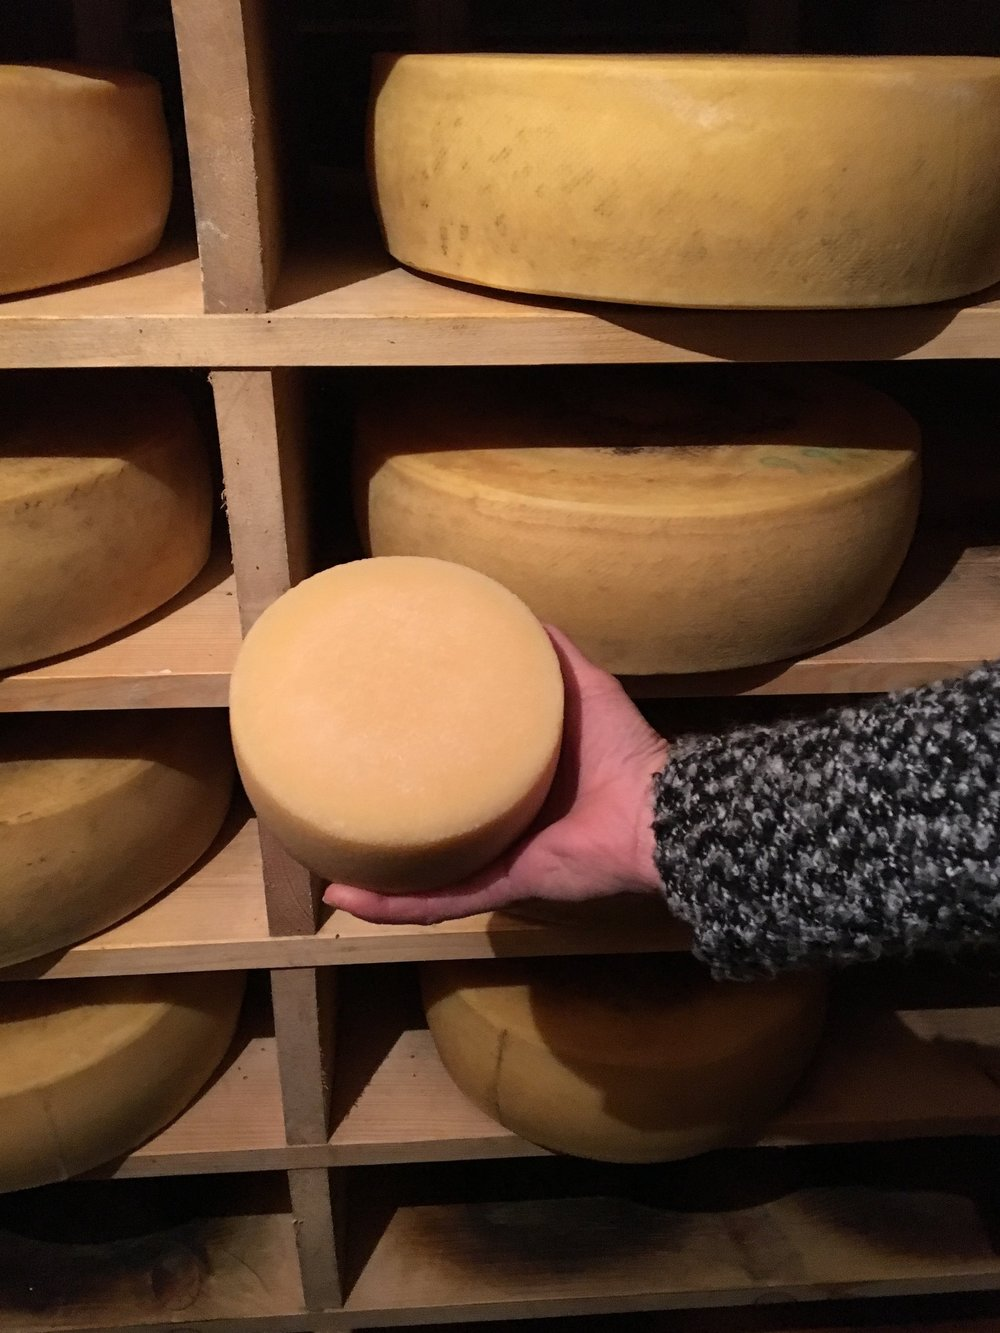 Self-made Swiss cheese souvenir